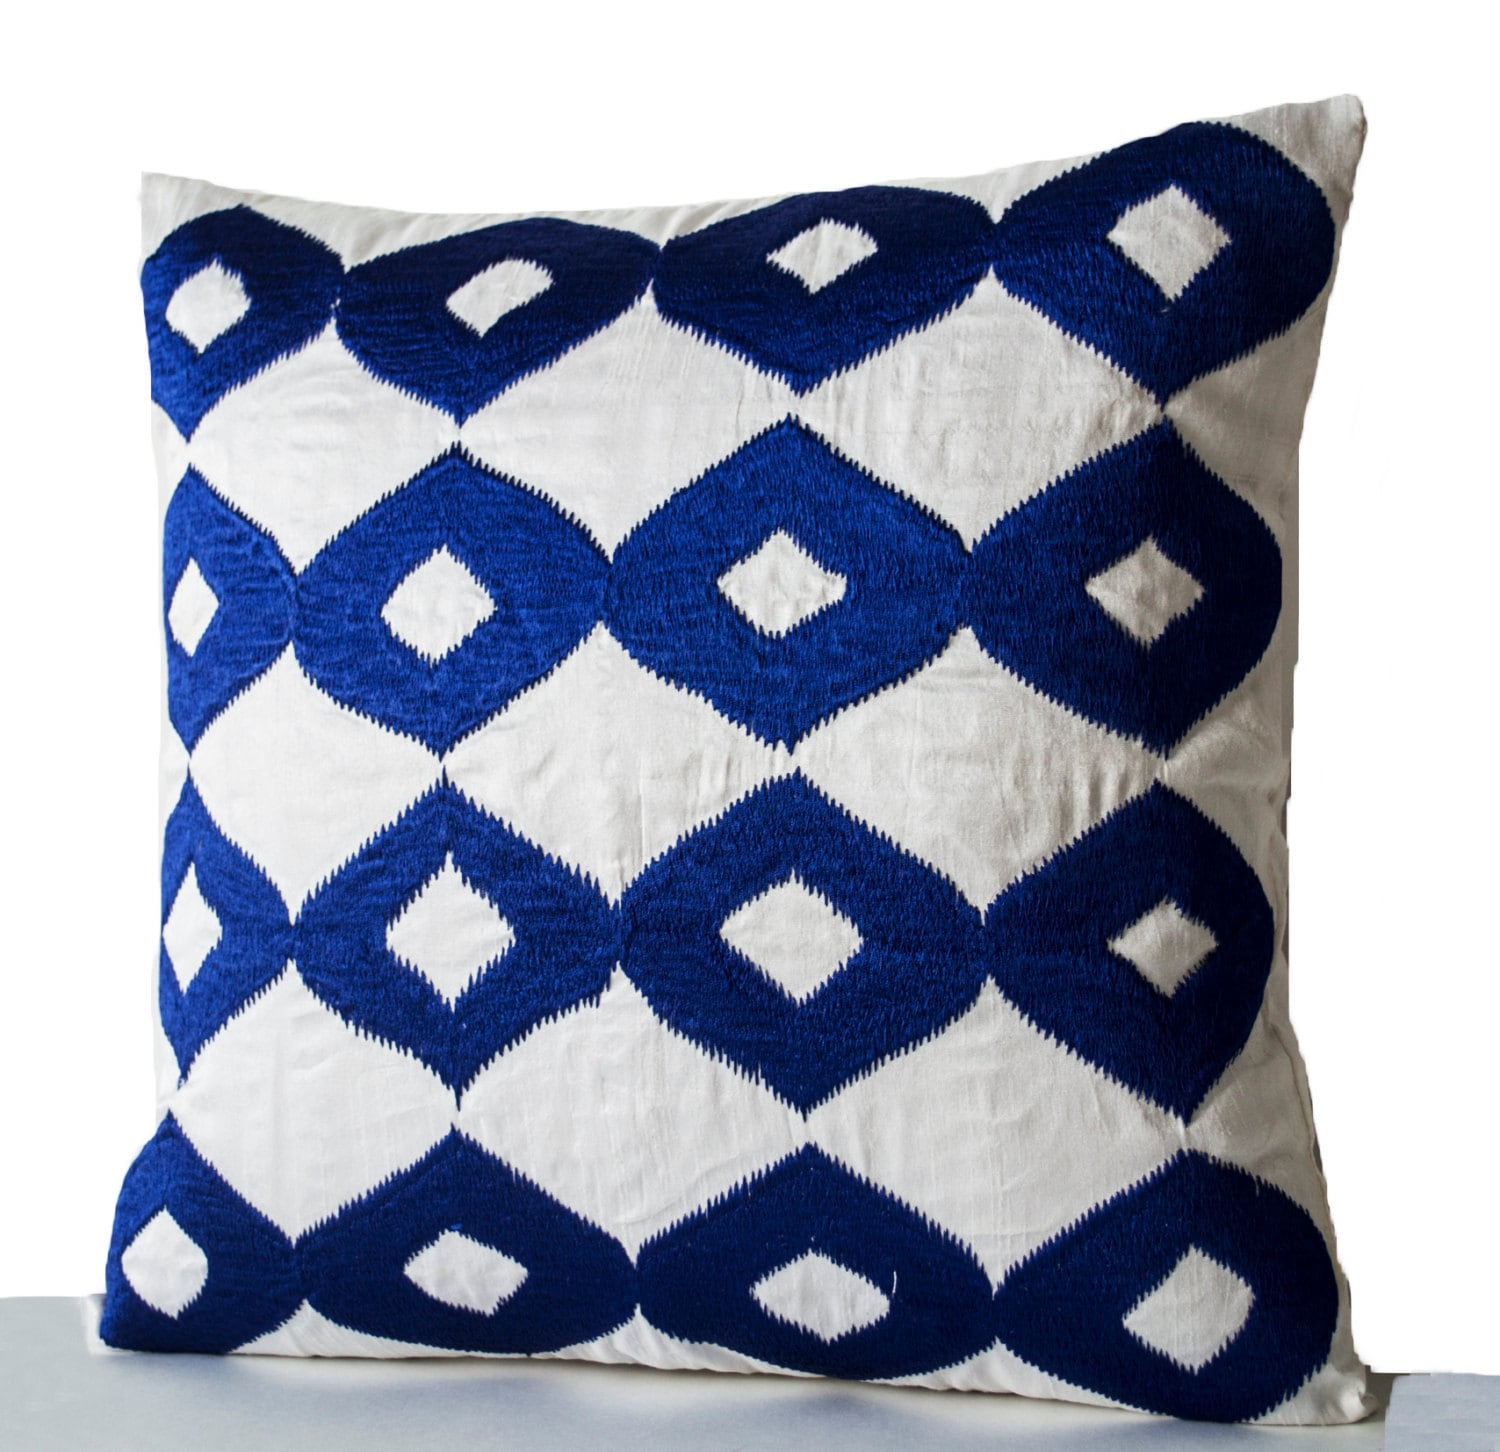 Throw Pillows Royal Blue : Decorative Throw Pillow Royal Blue Pillows White Faux Silk